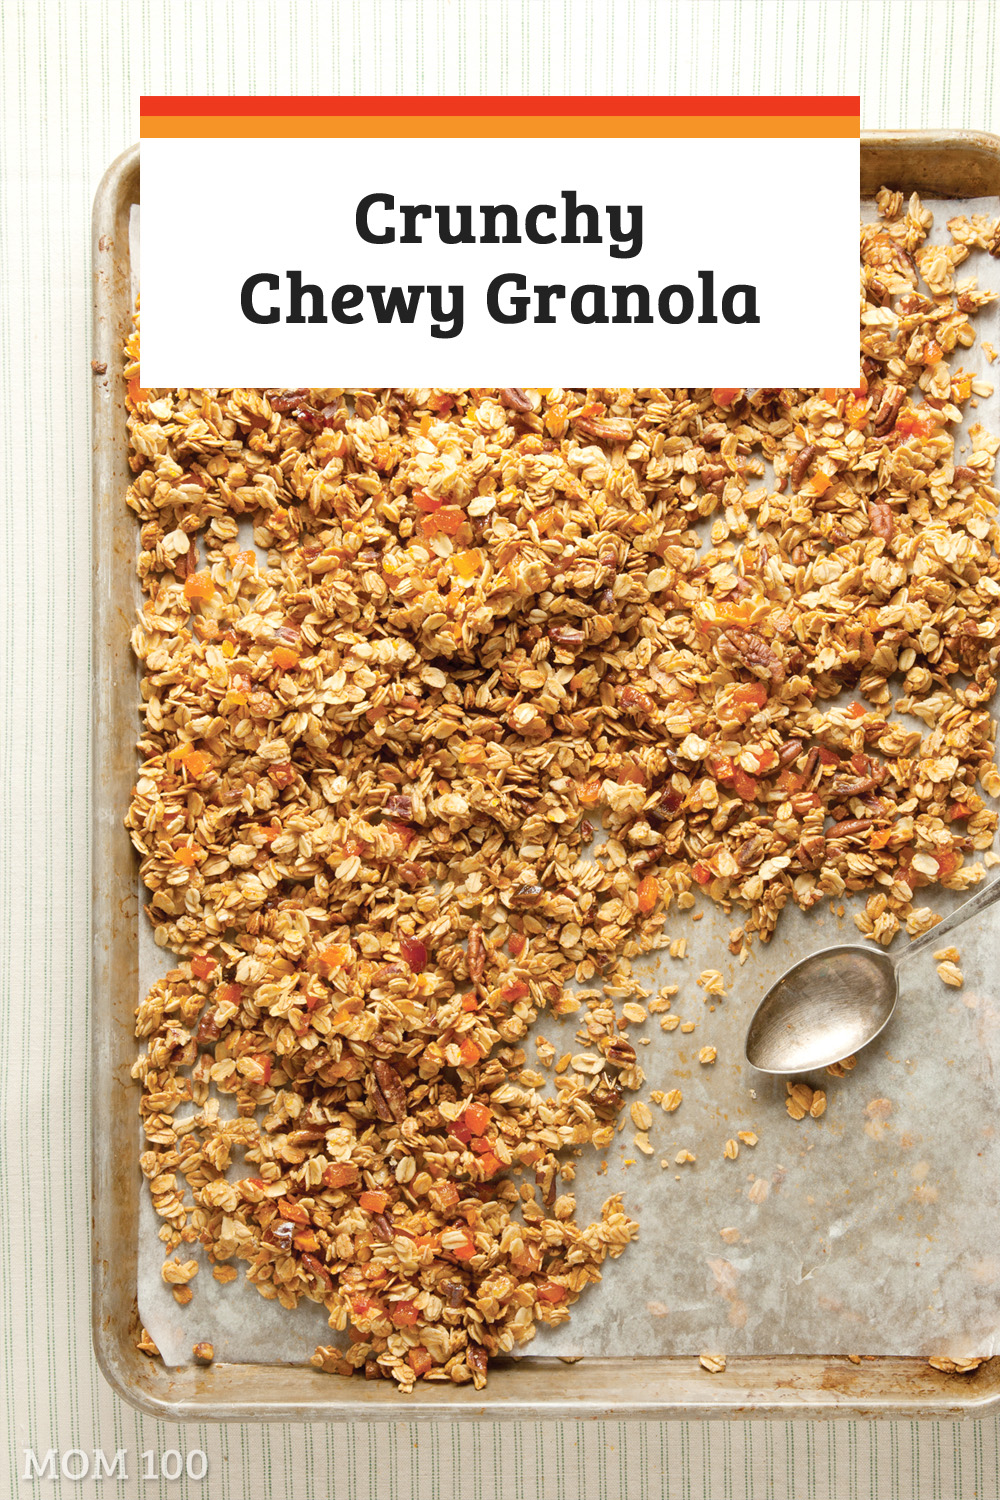 Homemade Granola is so easy to make and this customizable granola recipe will become a loved staple in your house.